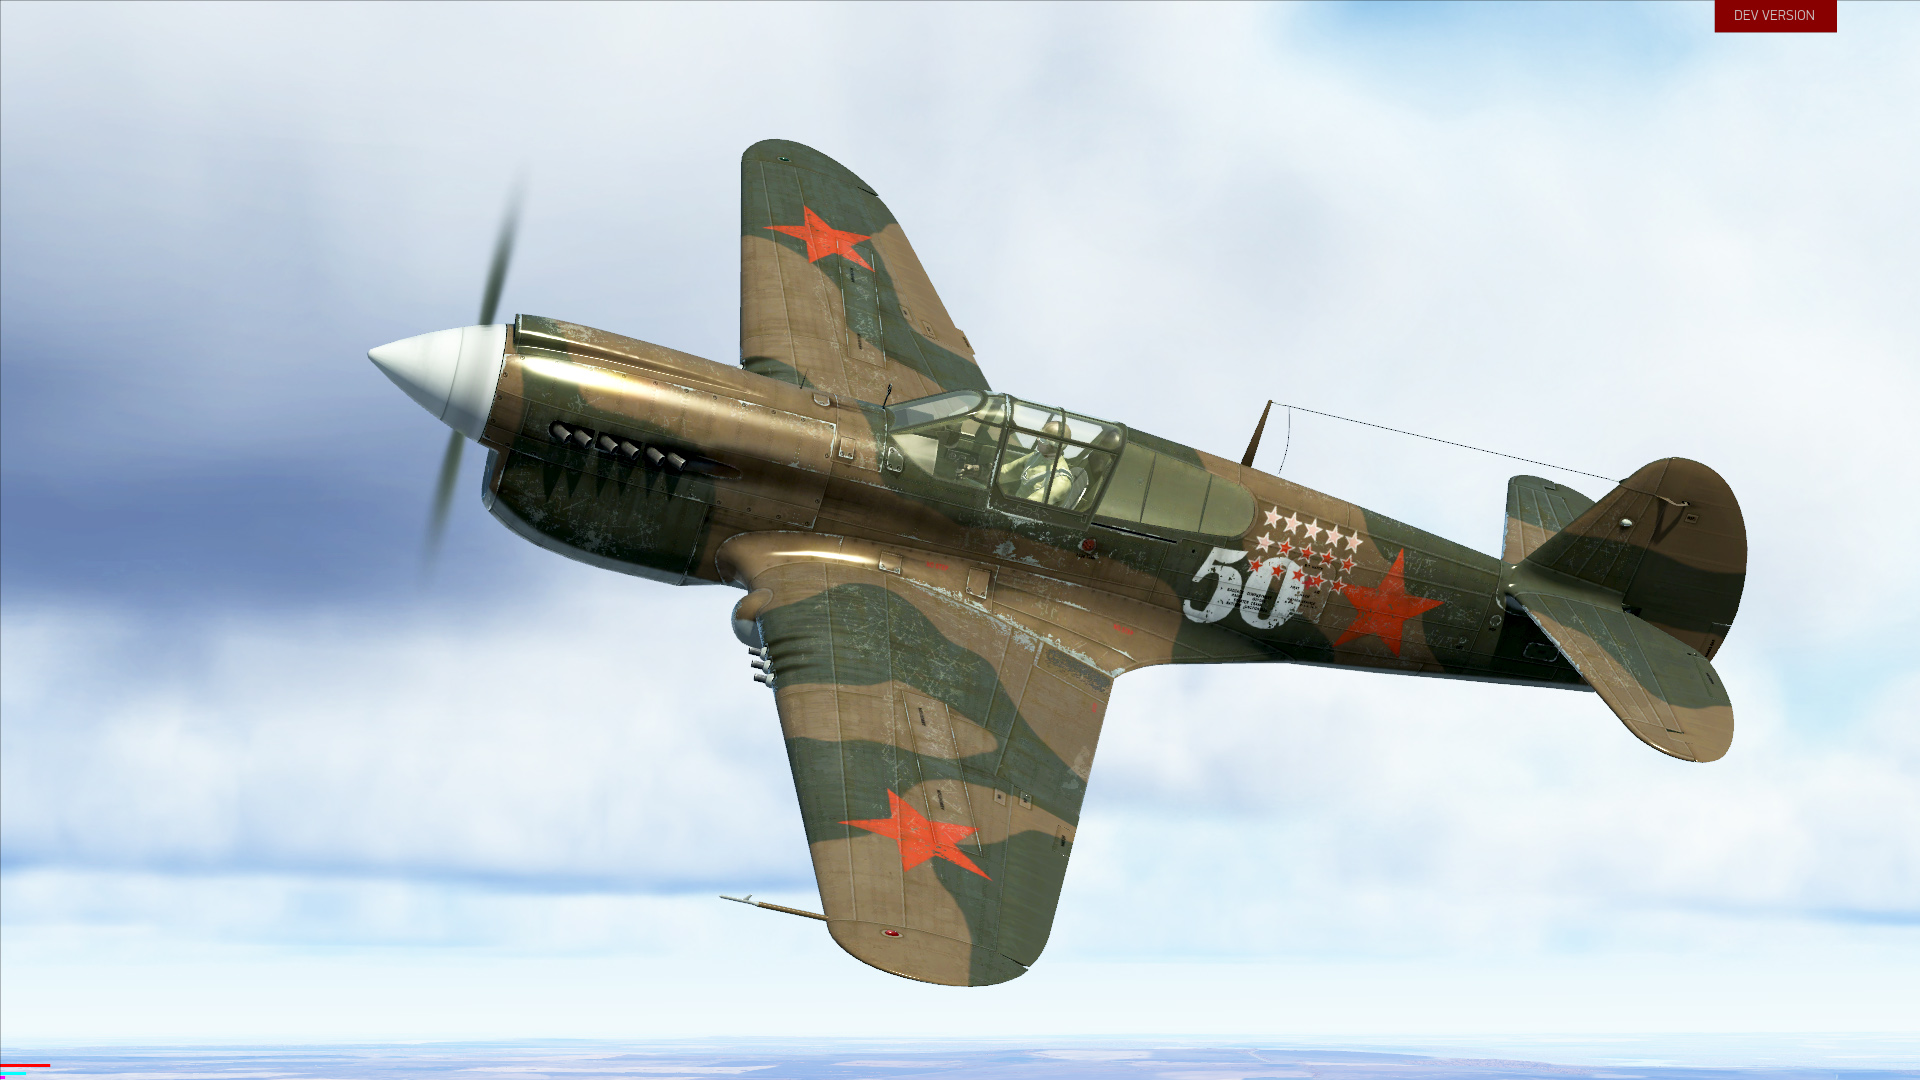 IL-2 Sturmovik: P-40E-1 Collector Plane screenshot